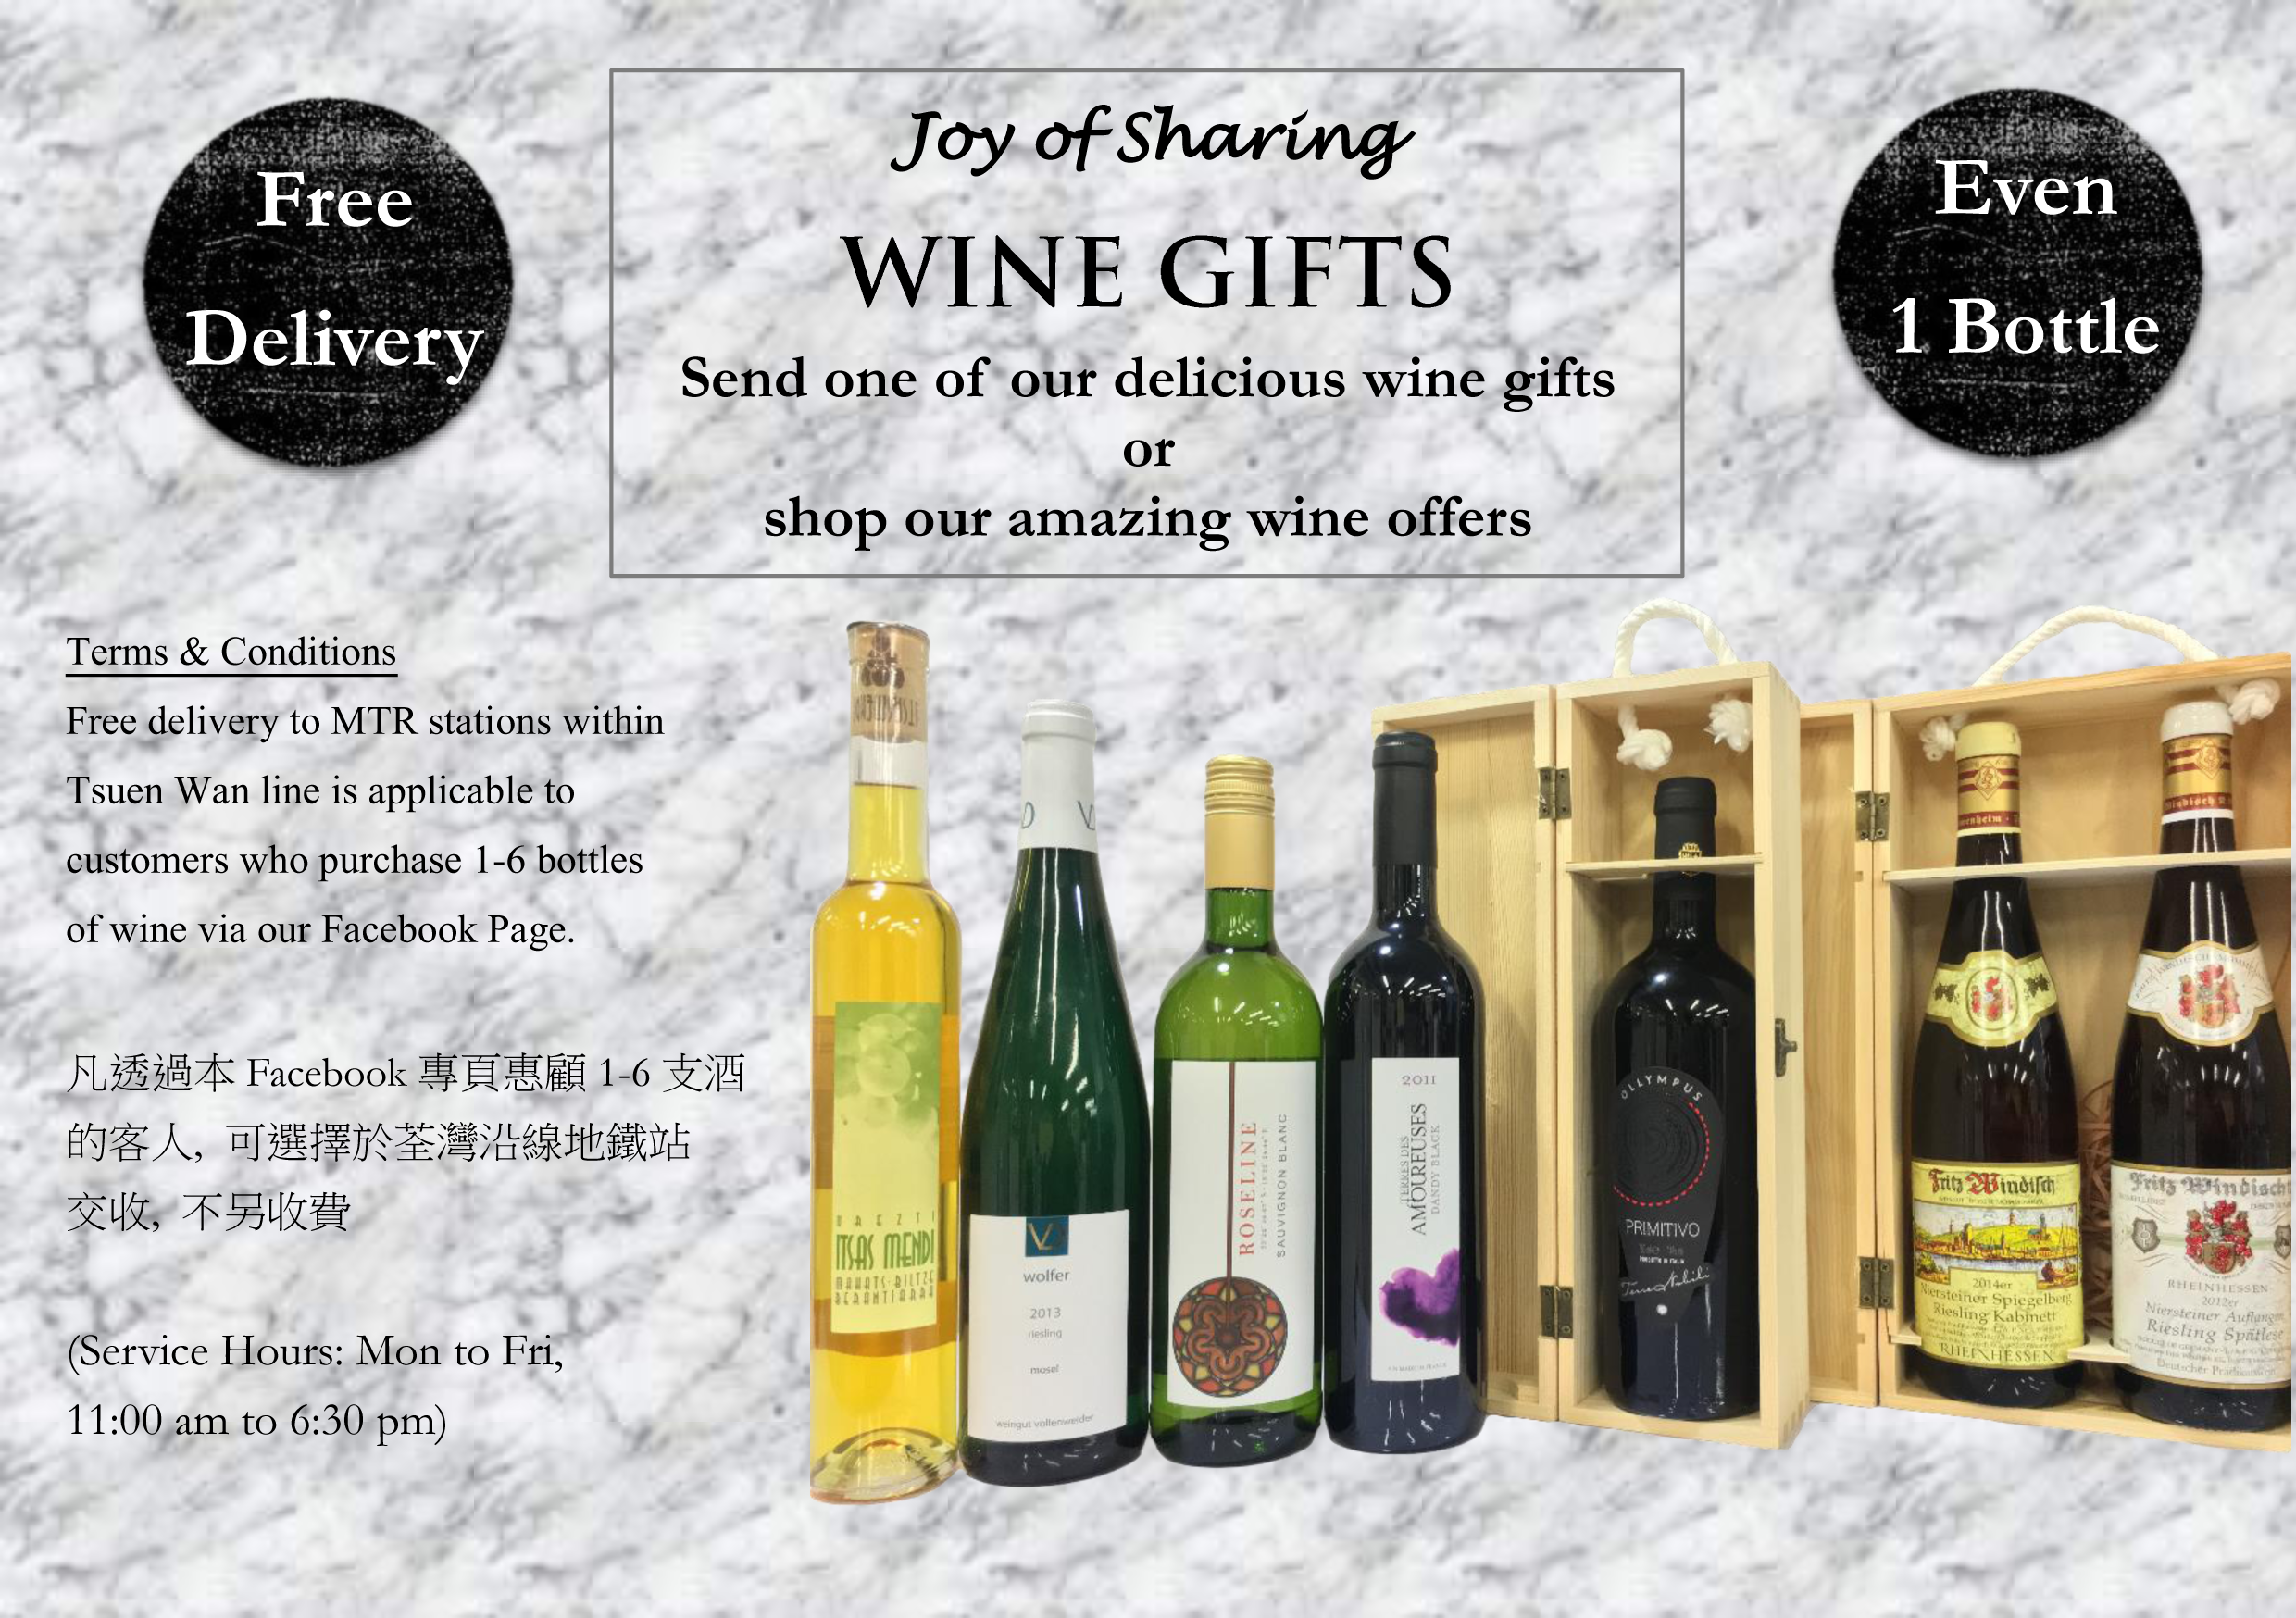 Joy of Sharing Free delivery Gift Box